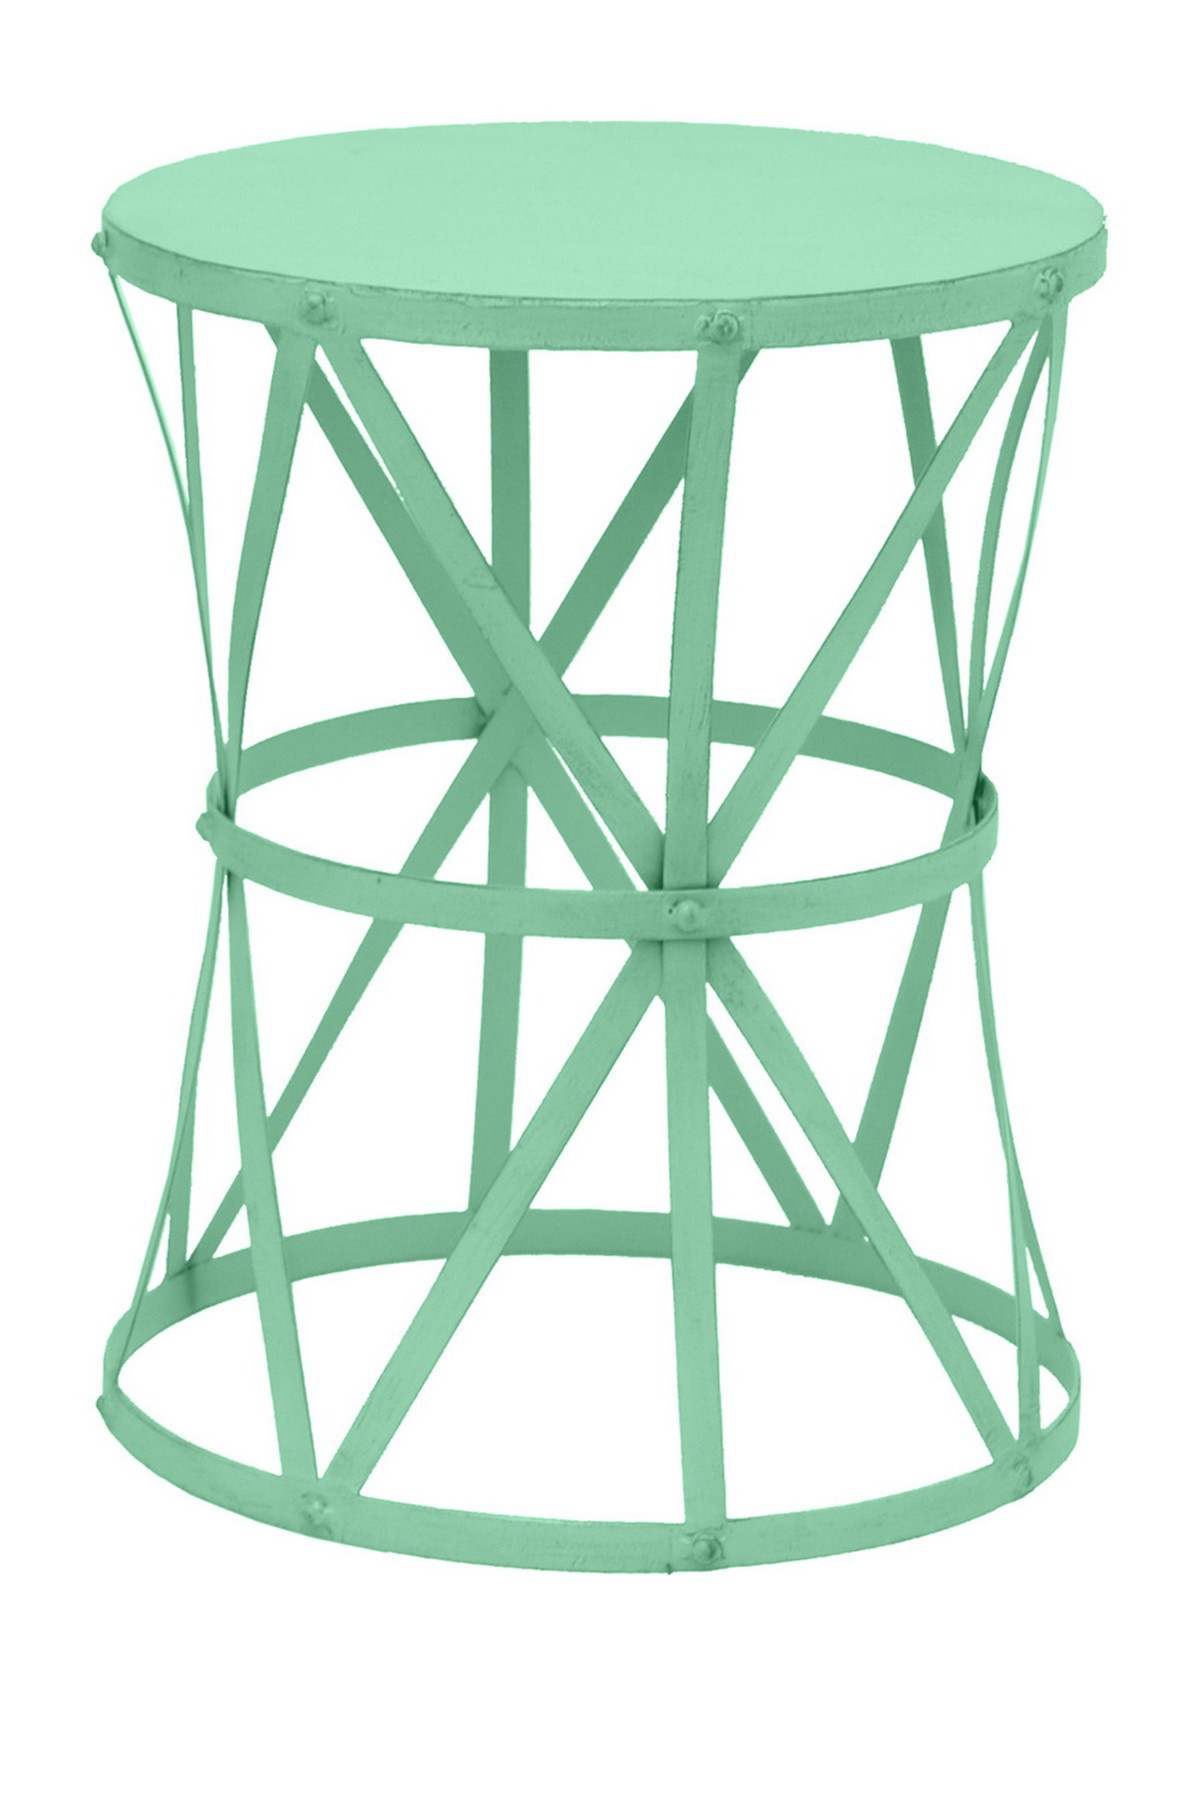 round glass outdoor tables bronze side iron white metal table patio legs drum corranade target base threshold accent wrought full size safavieh treasures wicker couch black half